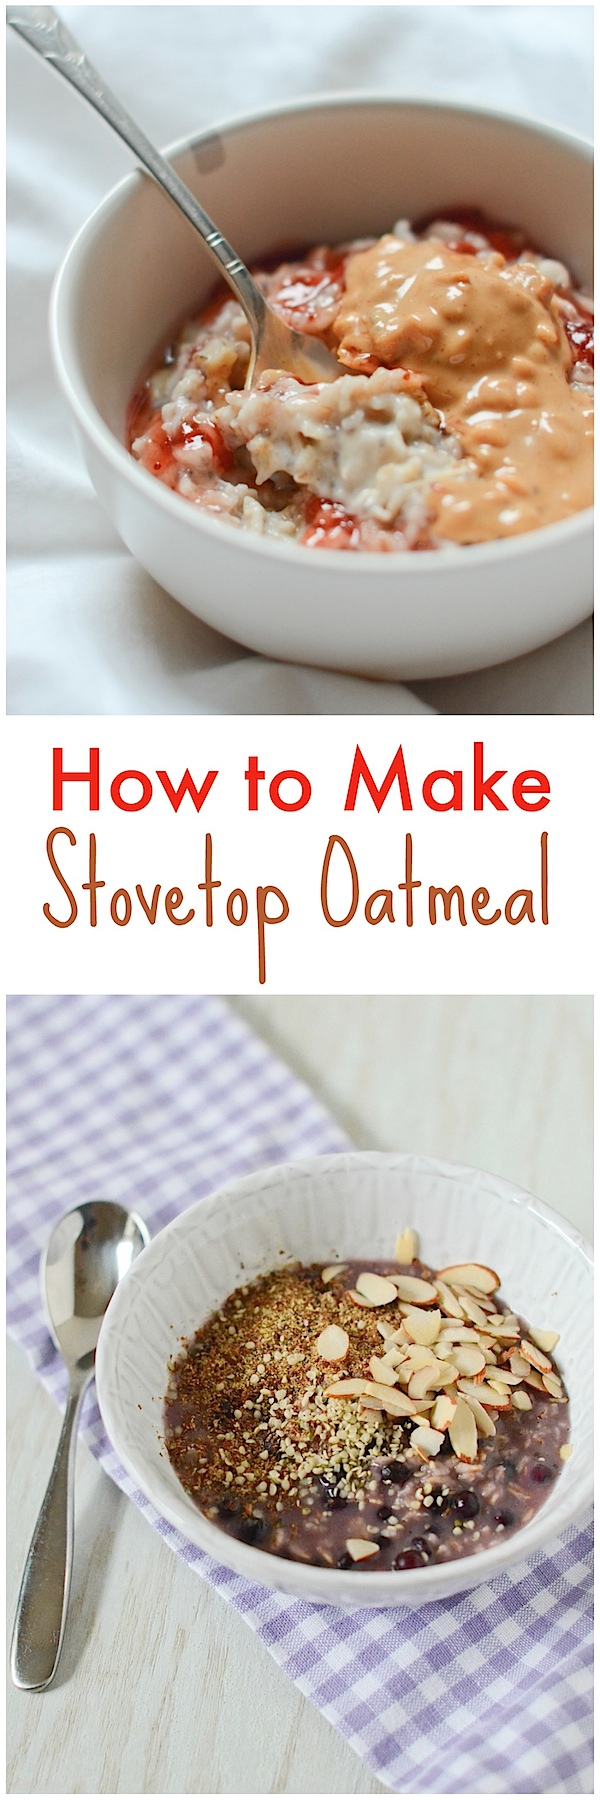 How to Make Stovetop Oatmeal: 5 Tips